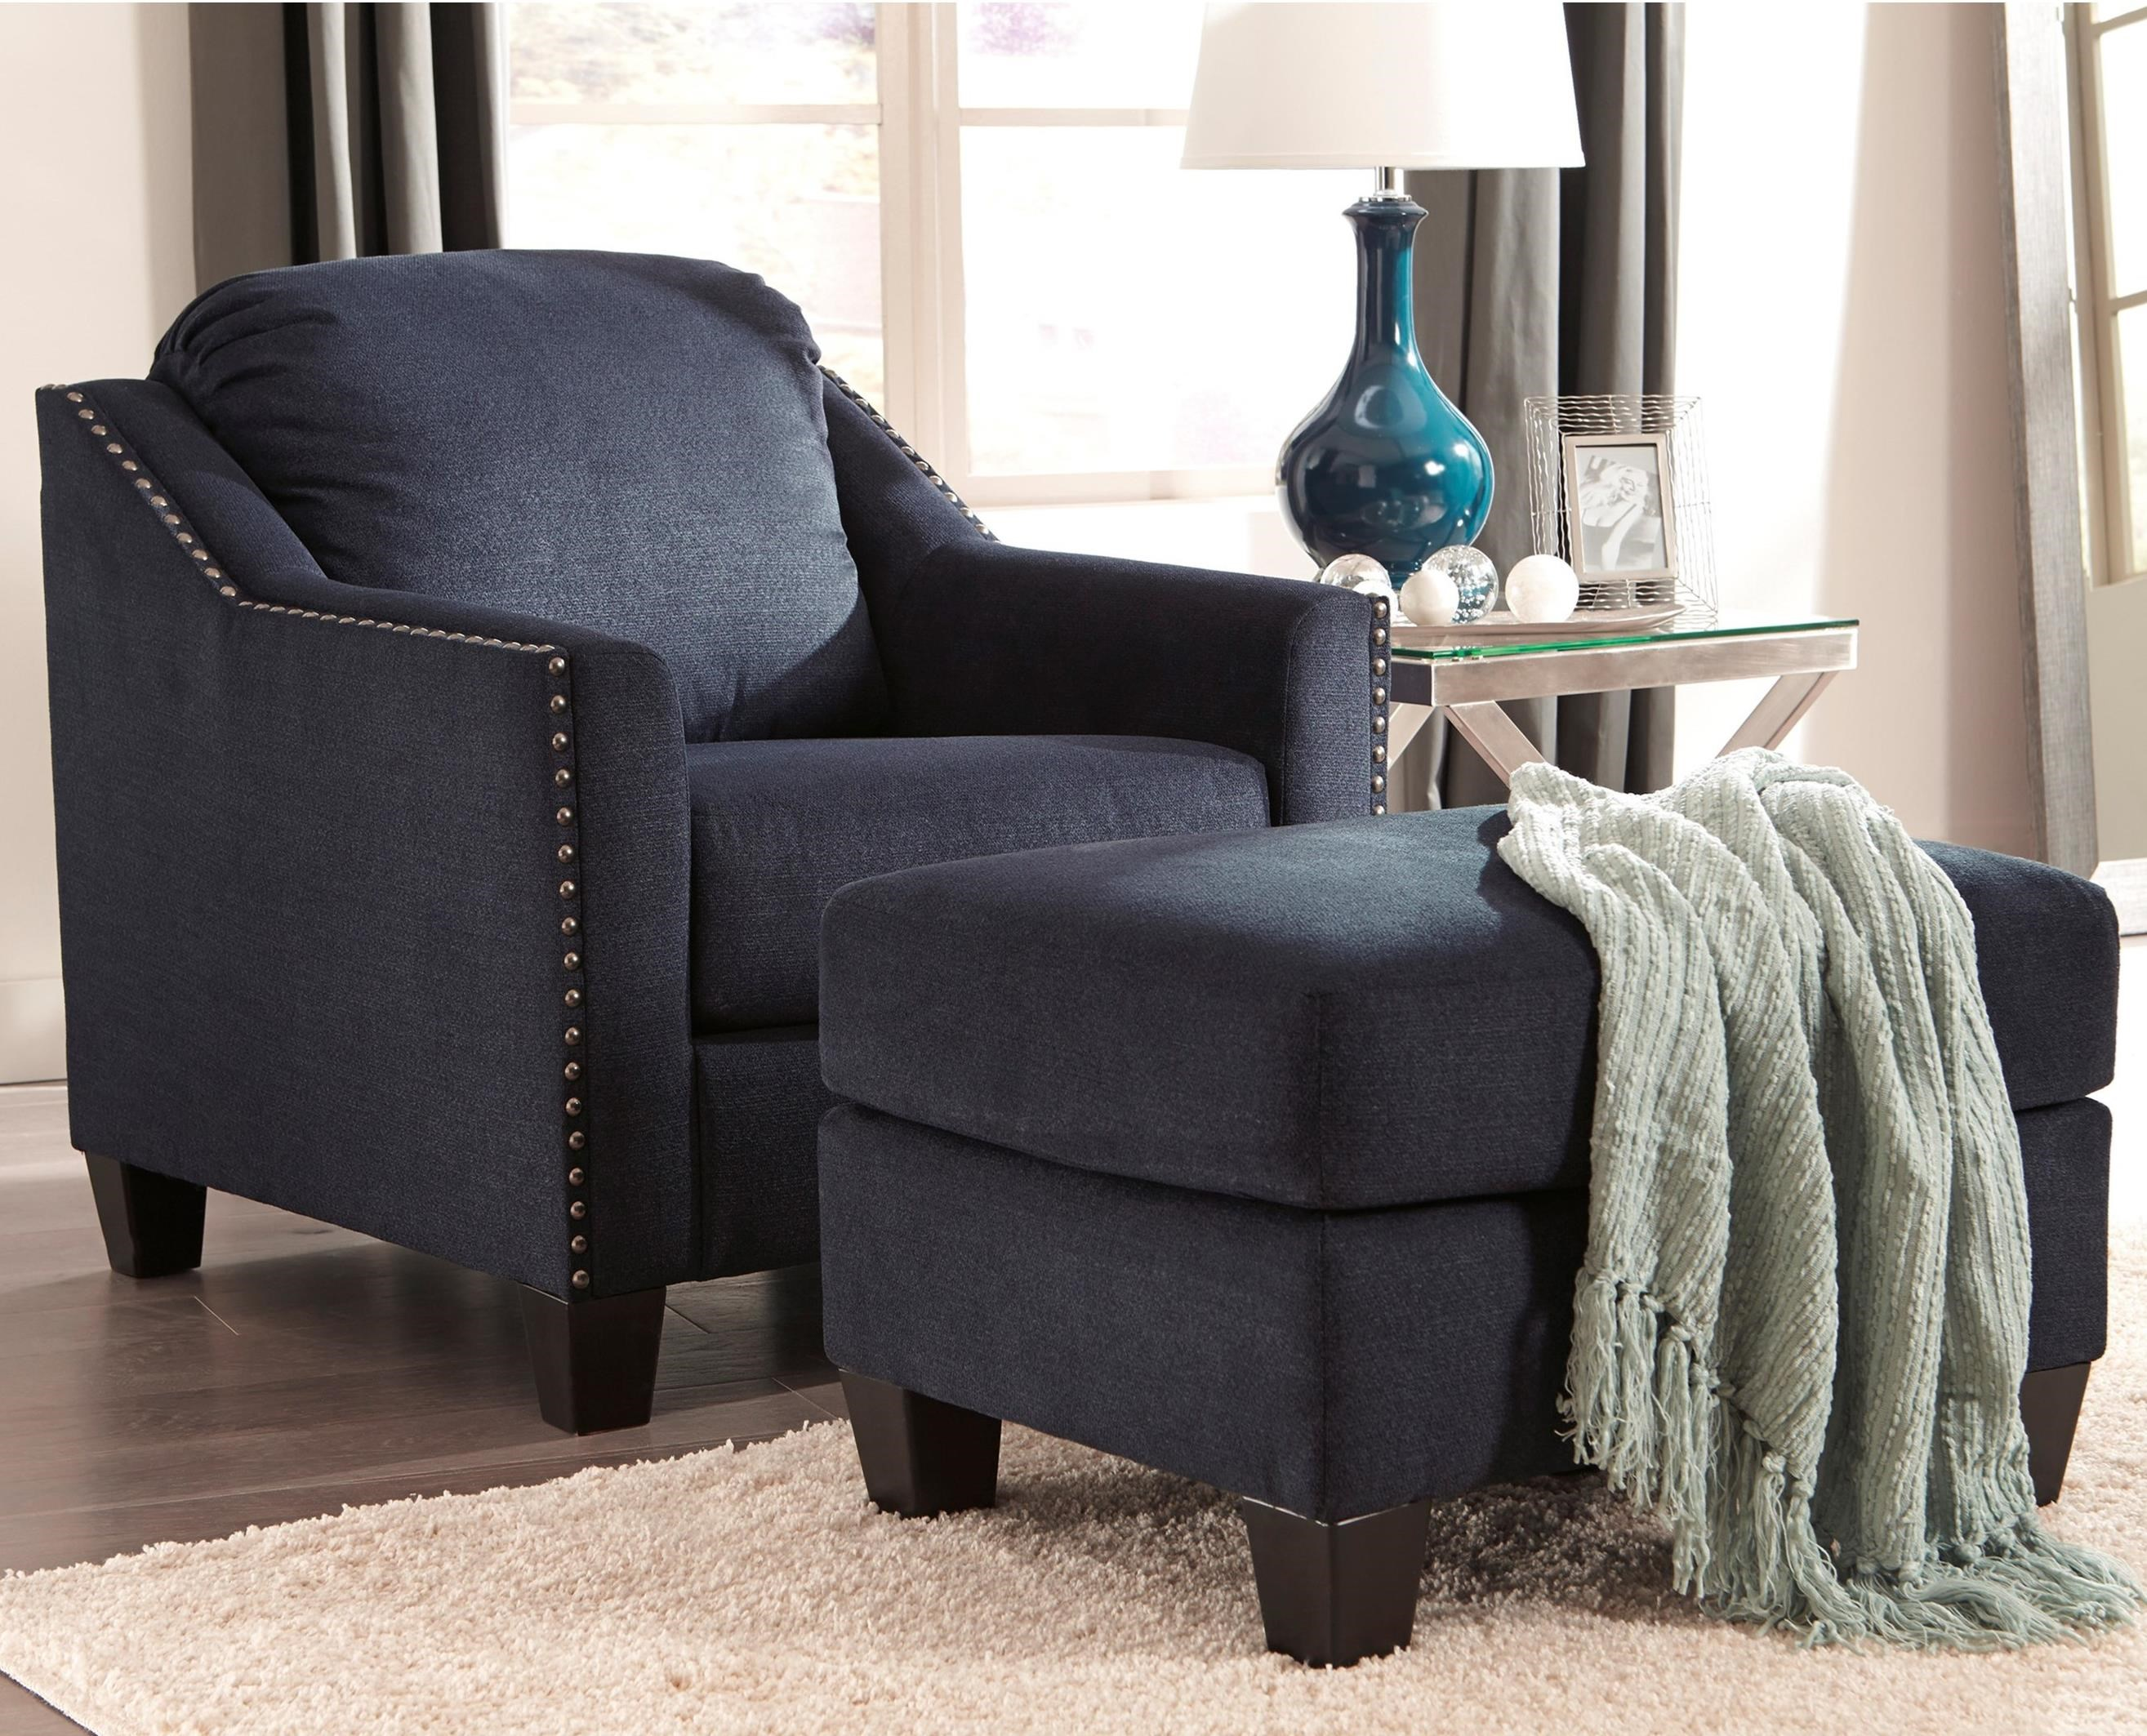 ashley chair and ottoman graco wooden high cover benchcraft by creeal heights nailhead studded